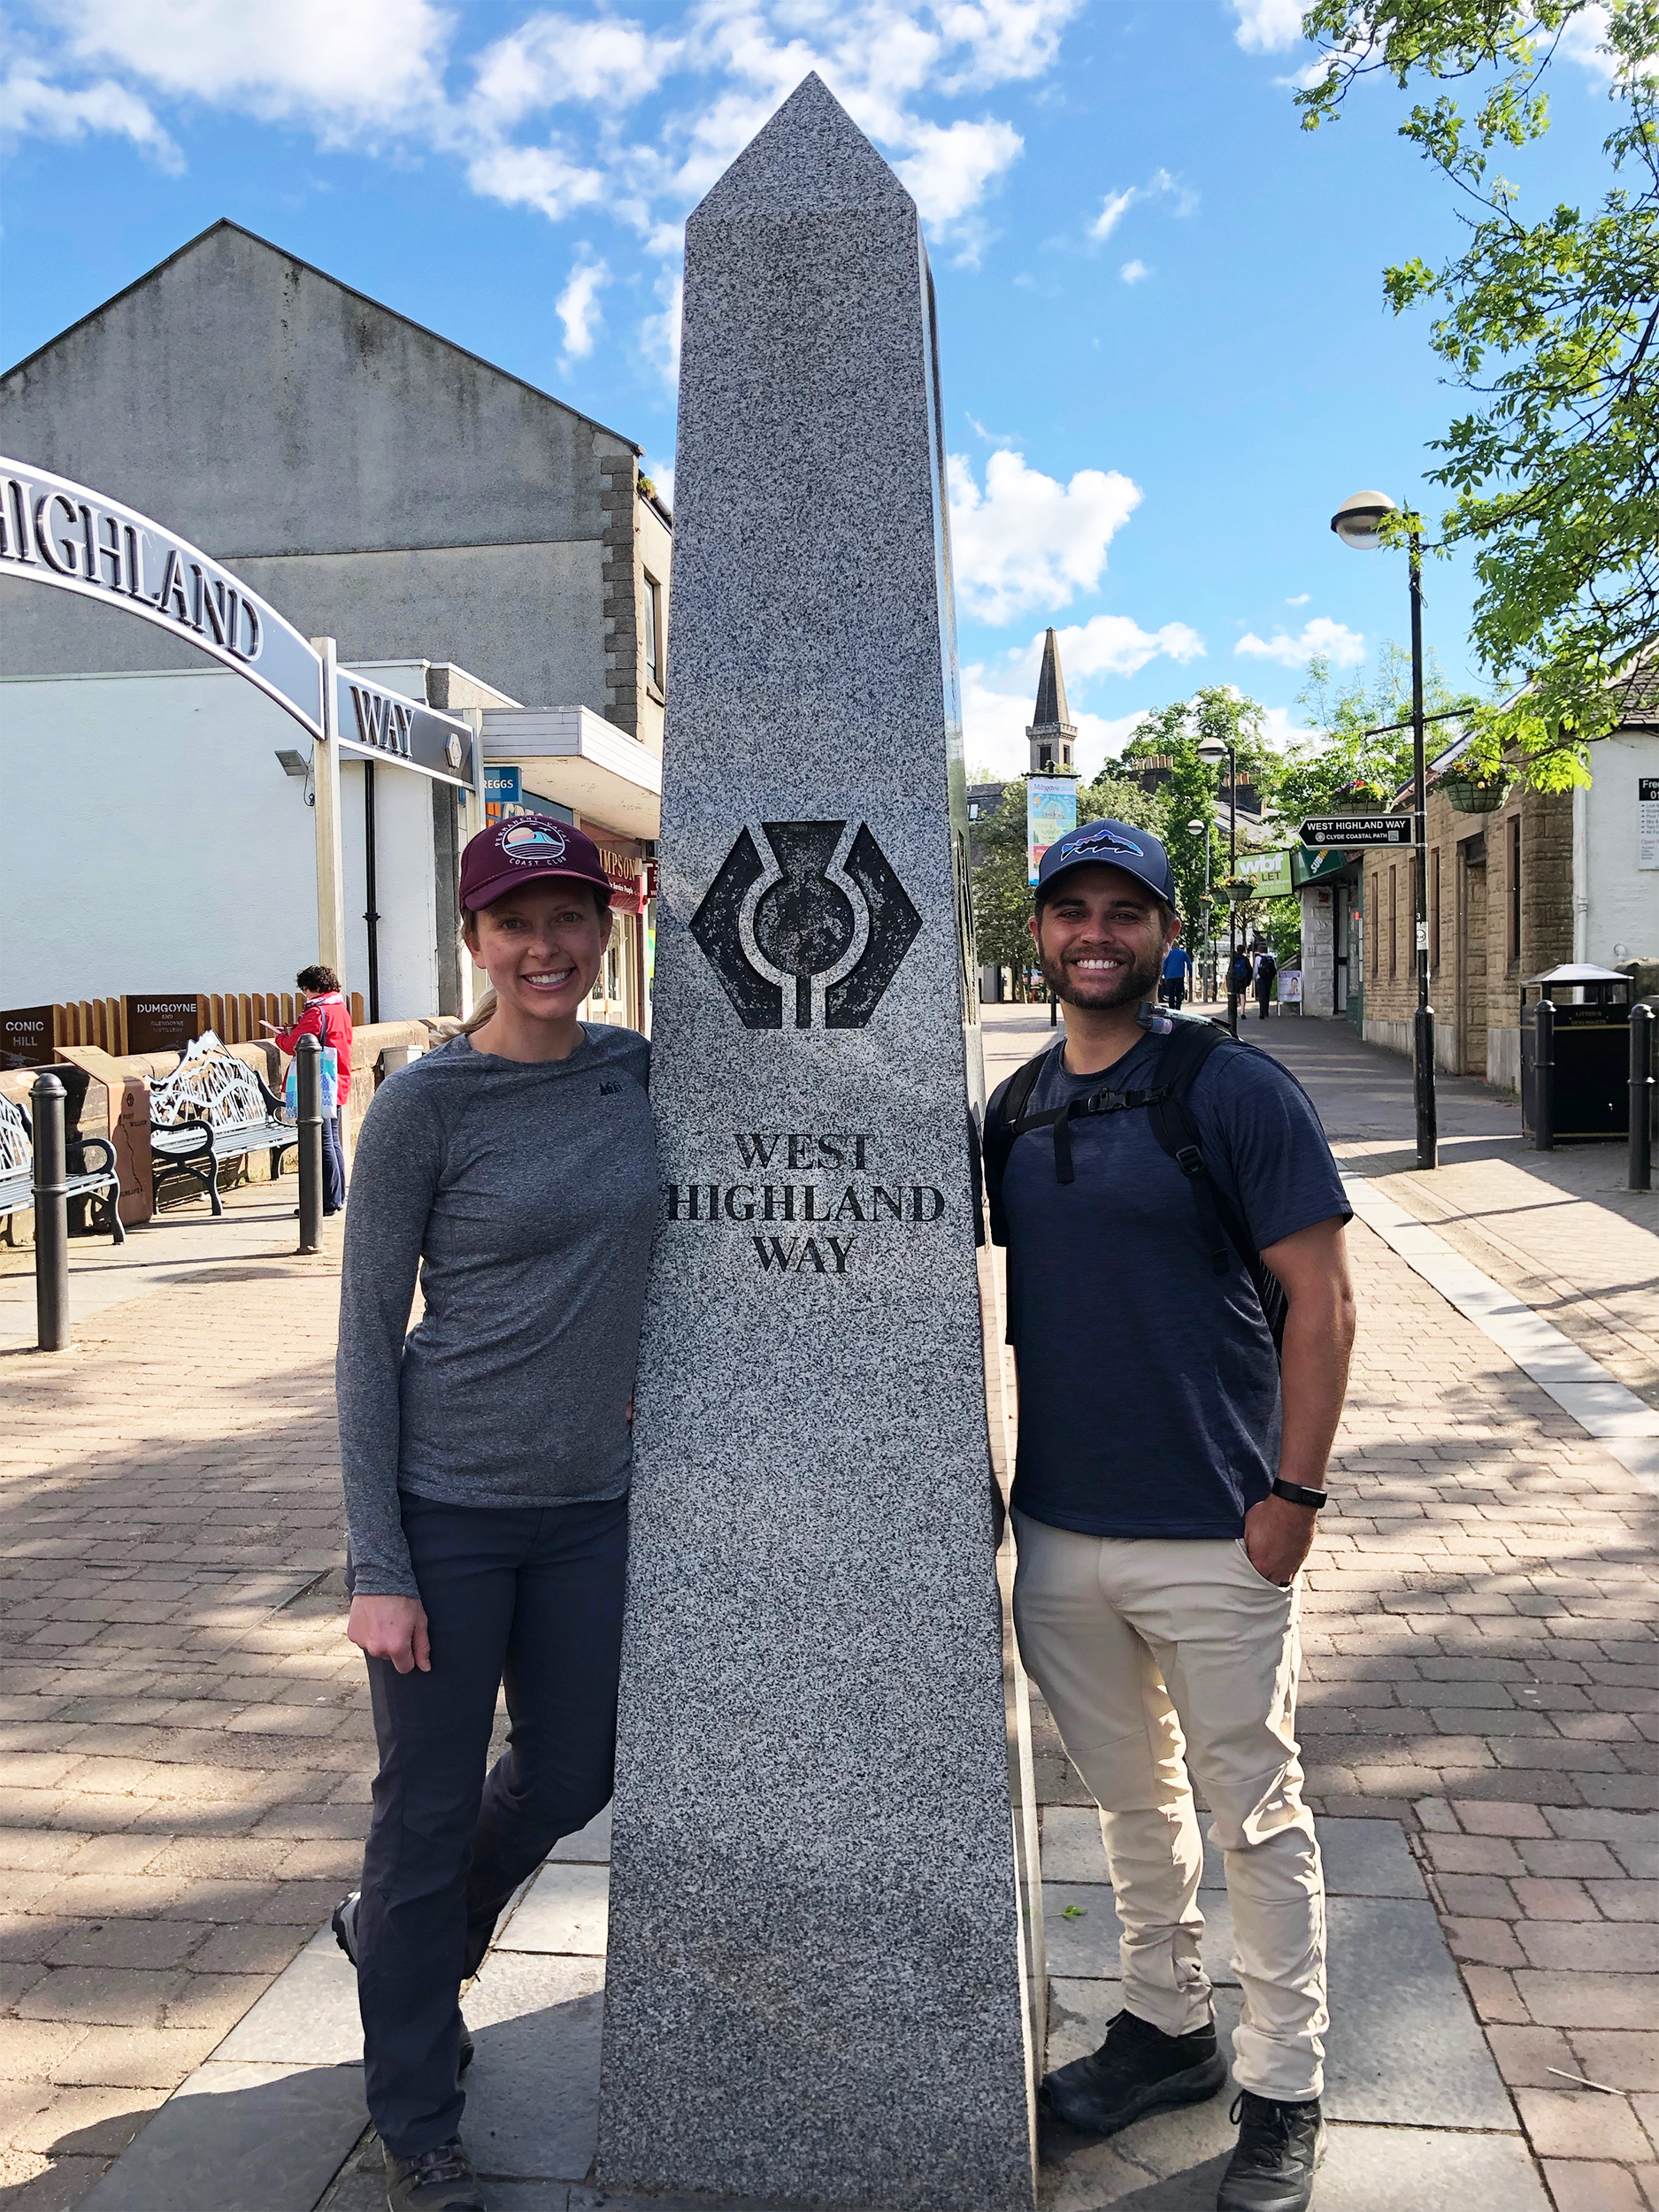 At the start of the West Highland Way in the middle of the quant little town of Milngavie.